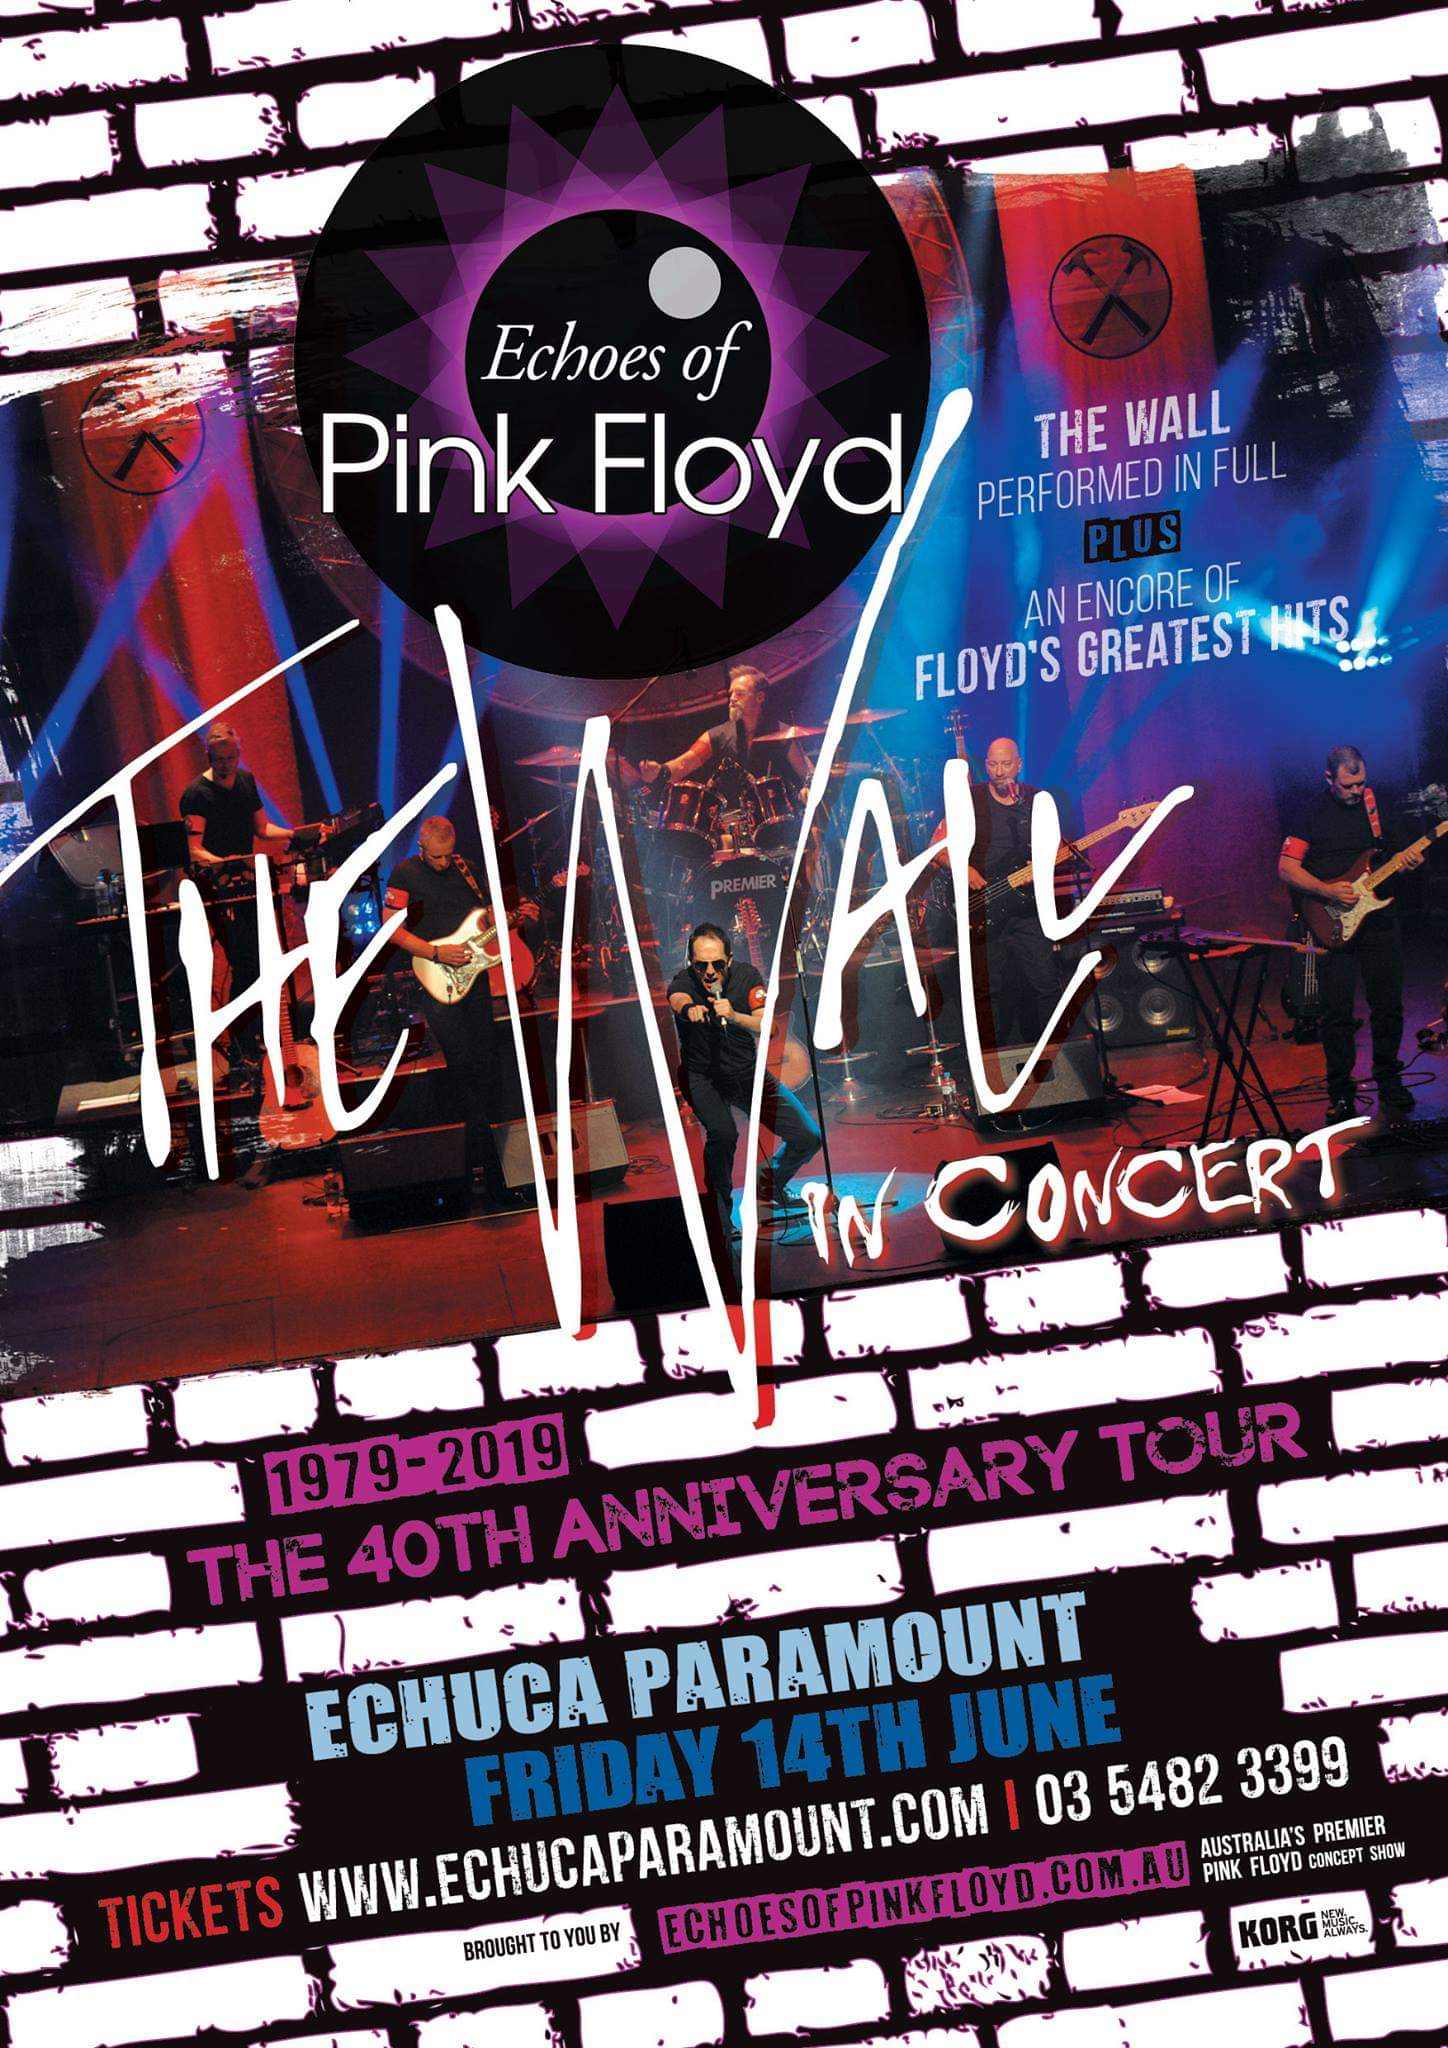 Echoes of Pink Floyd - Echuca – Events on the Murray